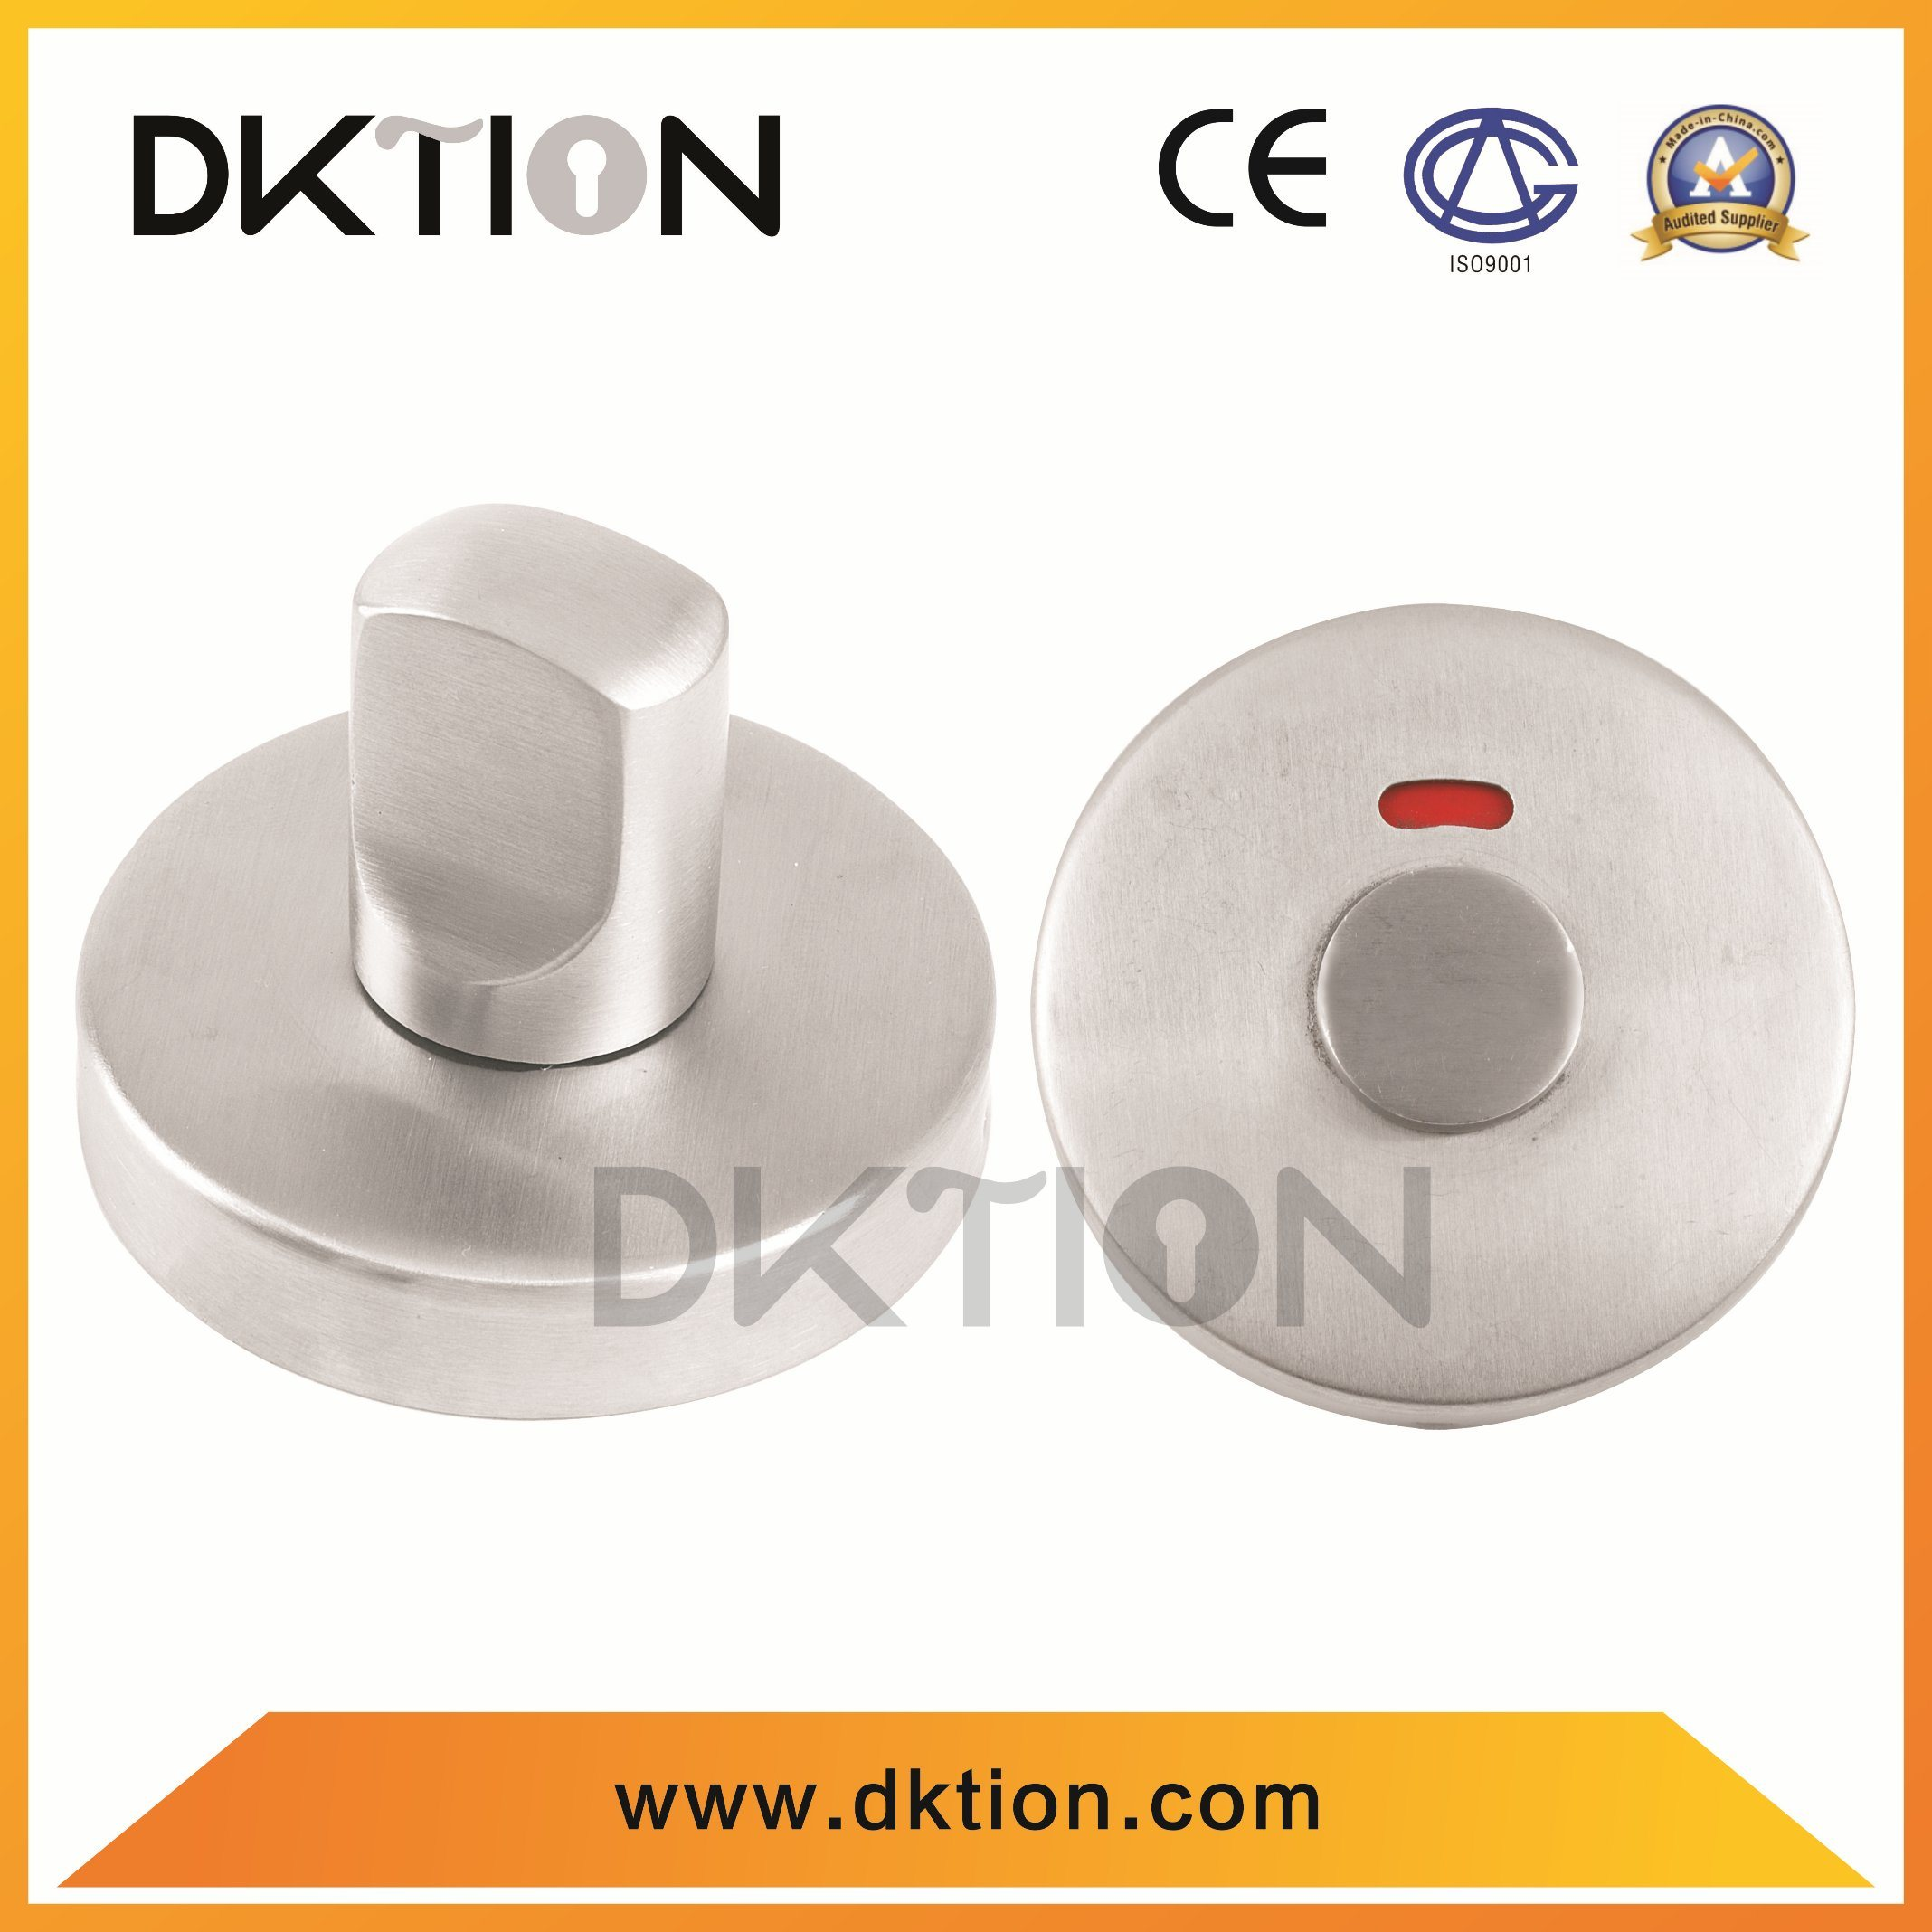 China CT001 Satinless Steel Bathroom Accessories Disabled Thumb Turn ...